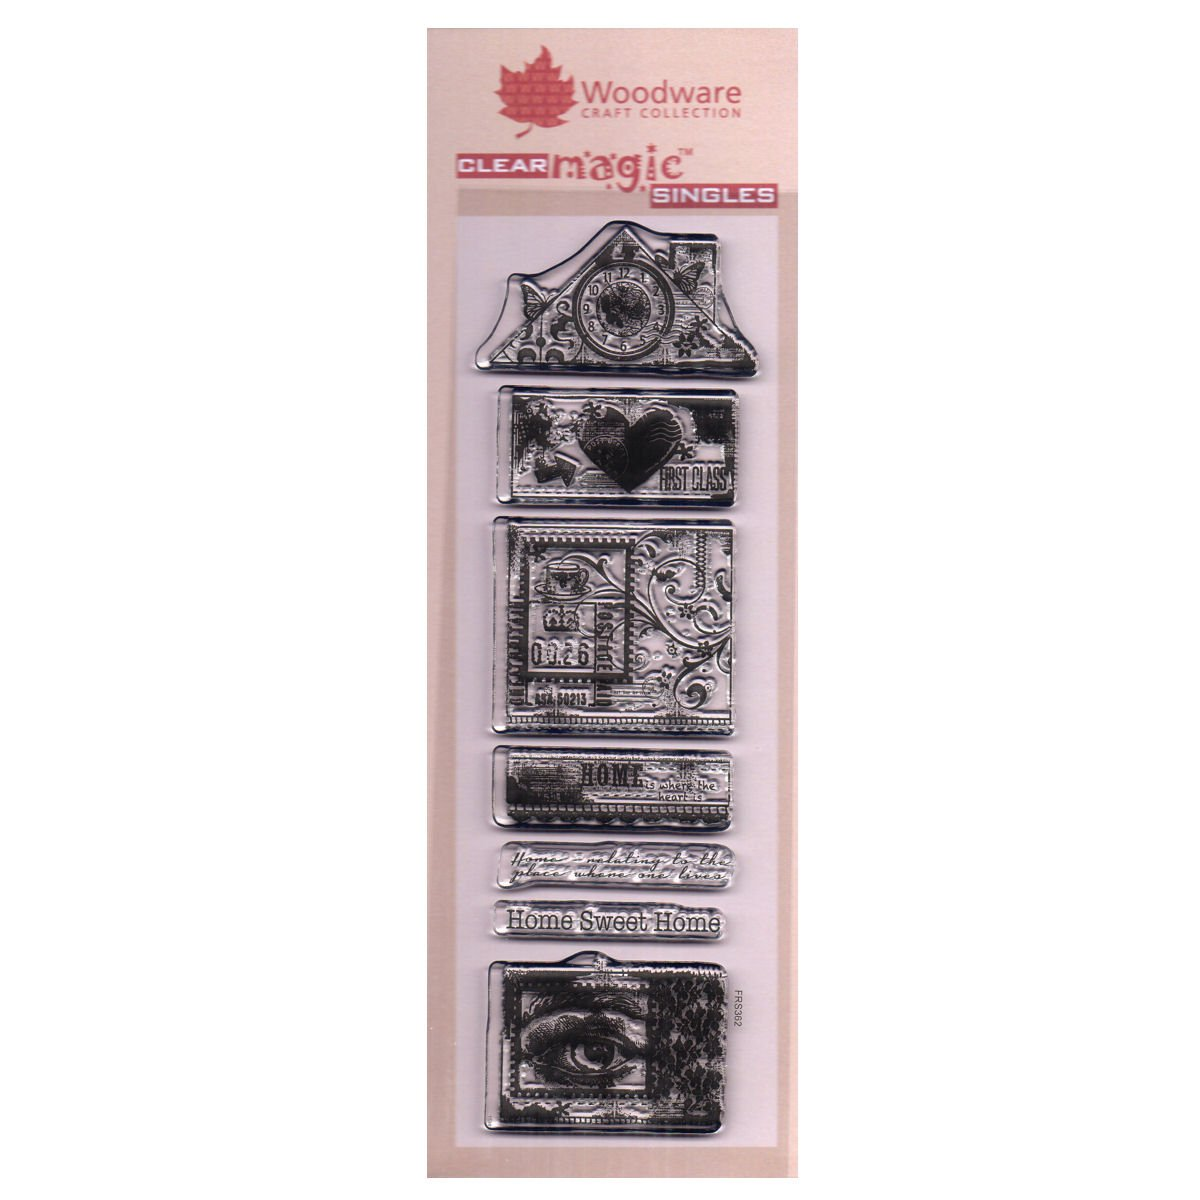 Woodware 3 x 8 Clear Cling Stamps - FRS362 Build A Home by WoodWare